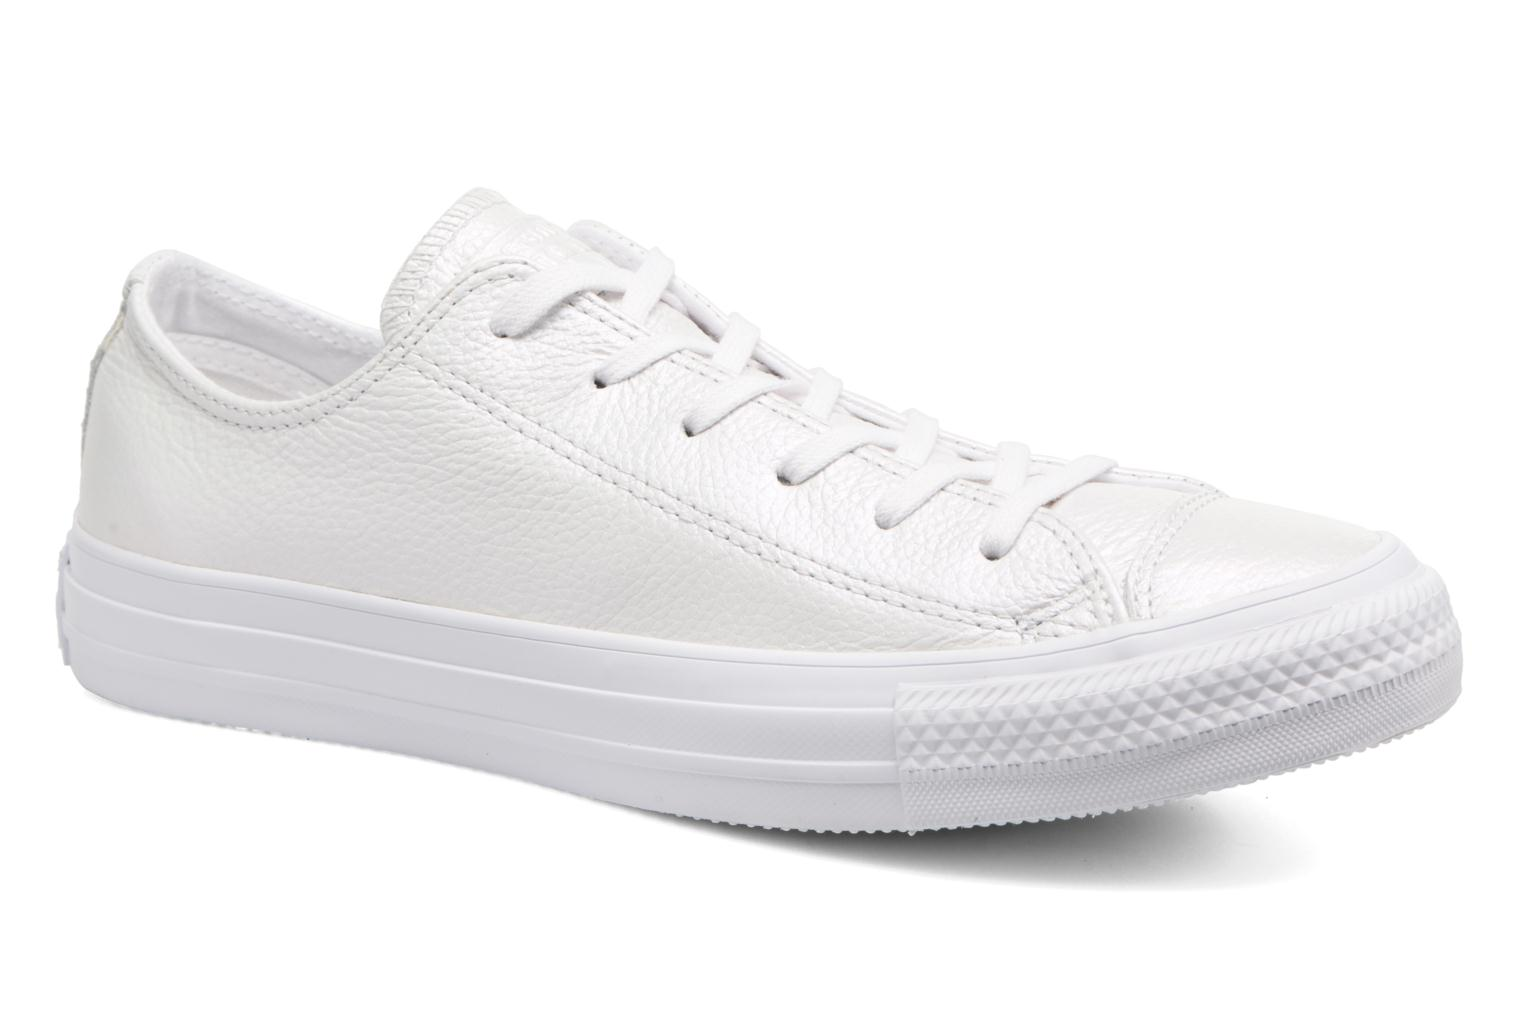 Grandes descuentos últimos zapatos Converse Chuck Leather Taylor All Star Iridescent Leather Chuck Ox (Blanco) - Deportivas Descuento d6a582